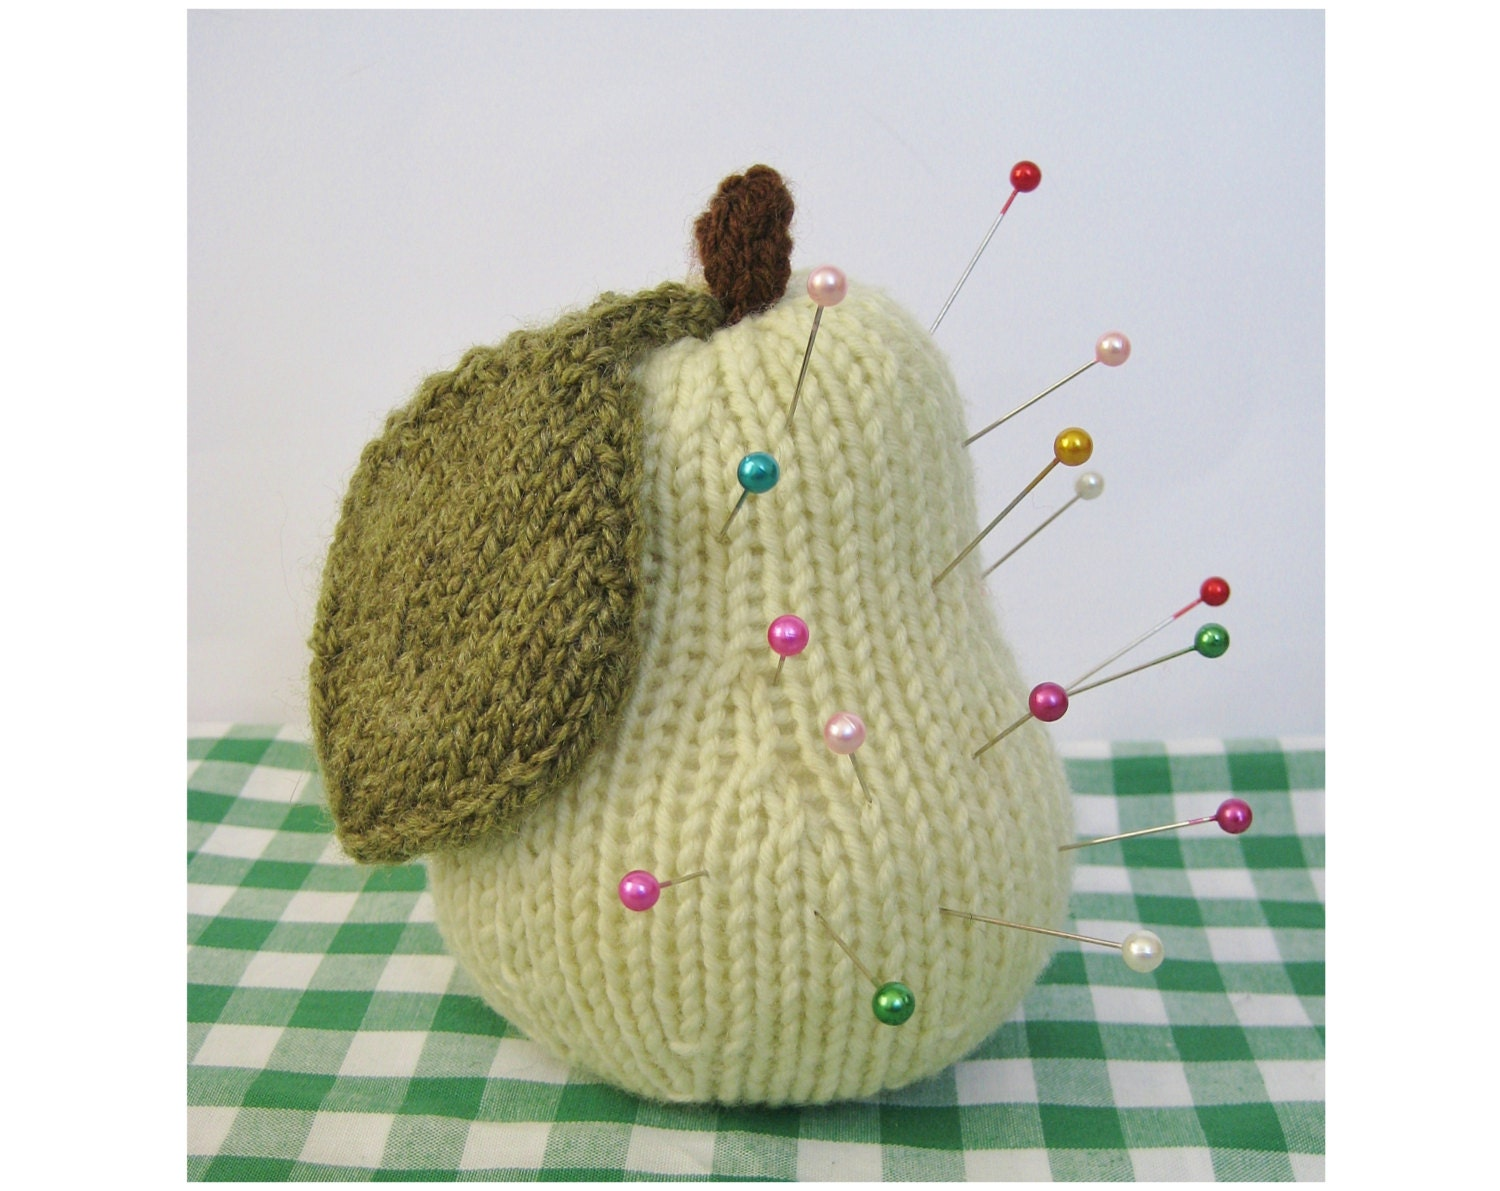 Knitted Apple Pattern : Apple & Pear toy knitting patterns by fluffandfuzz on Etsy